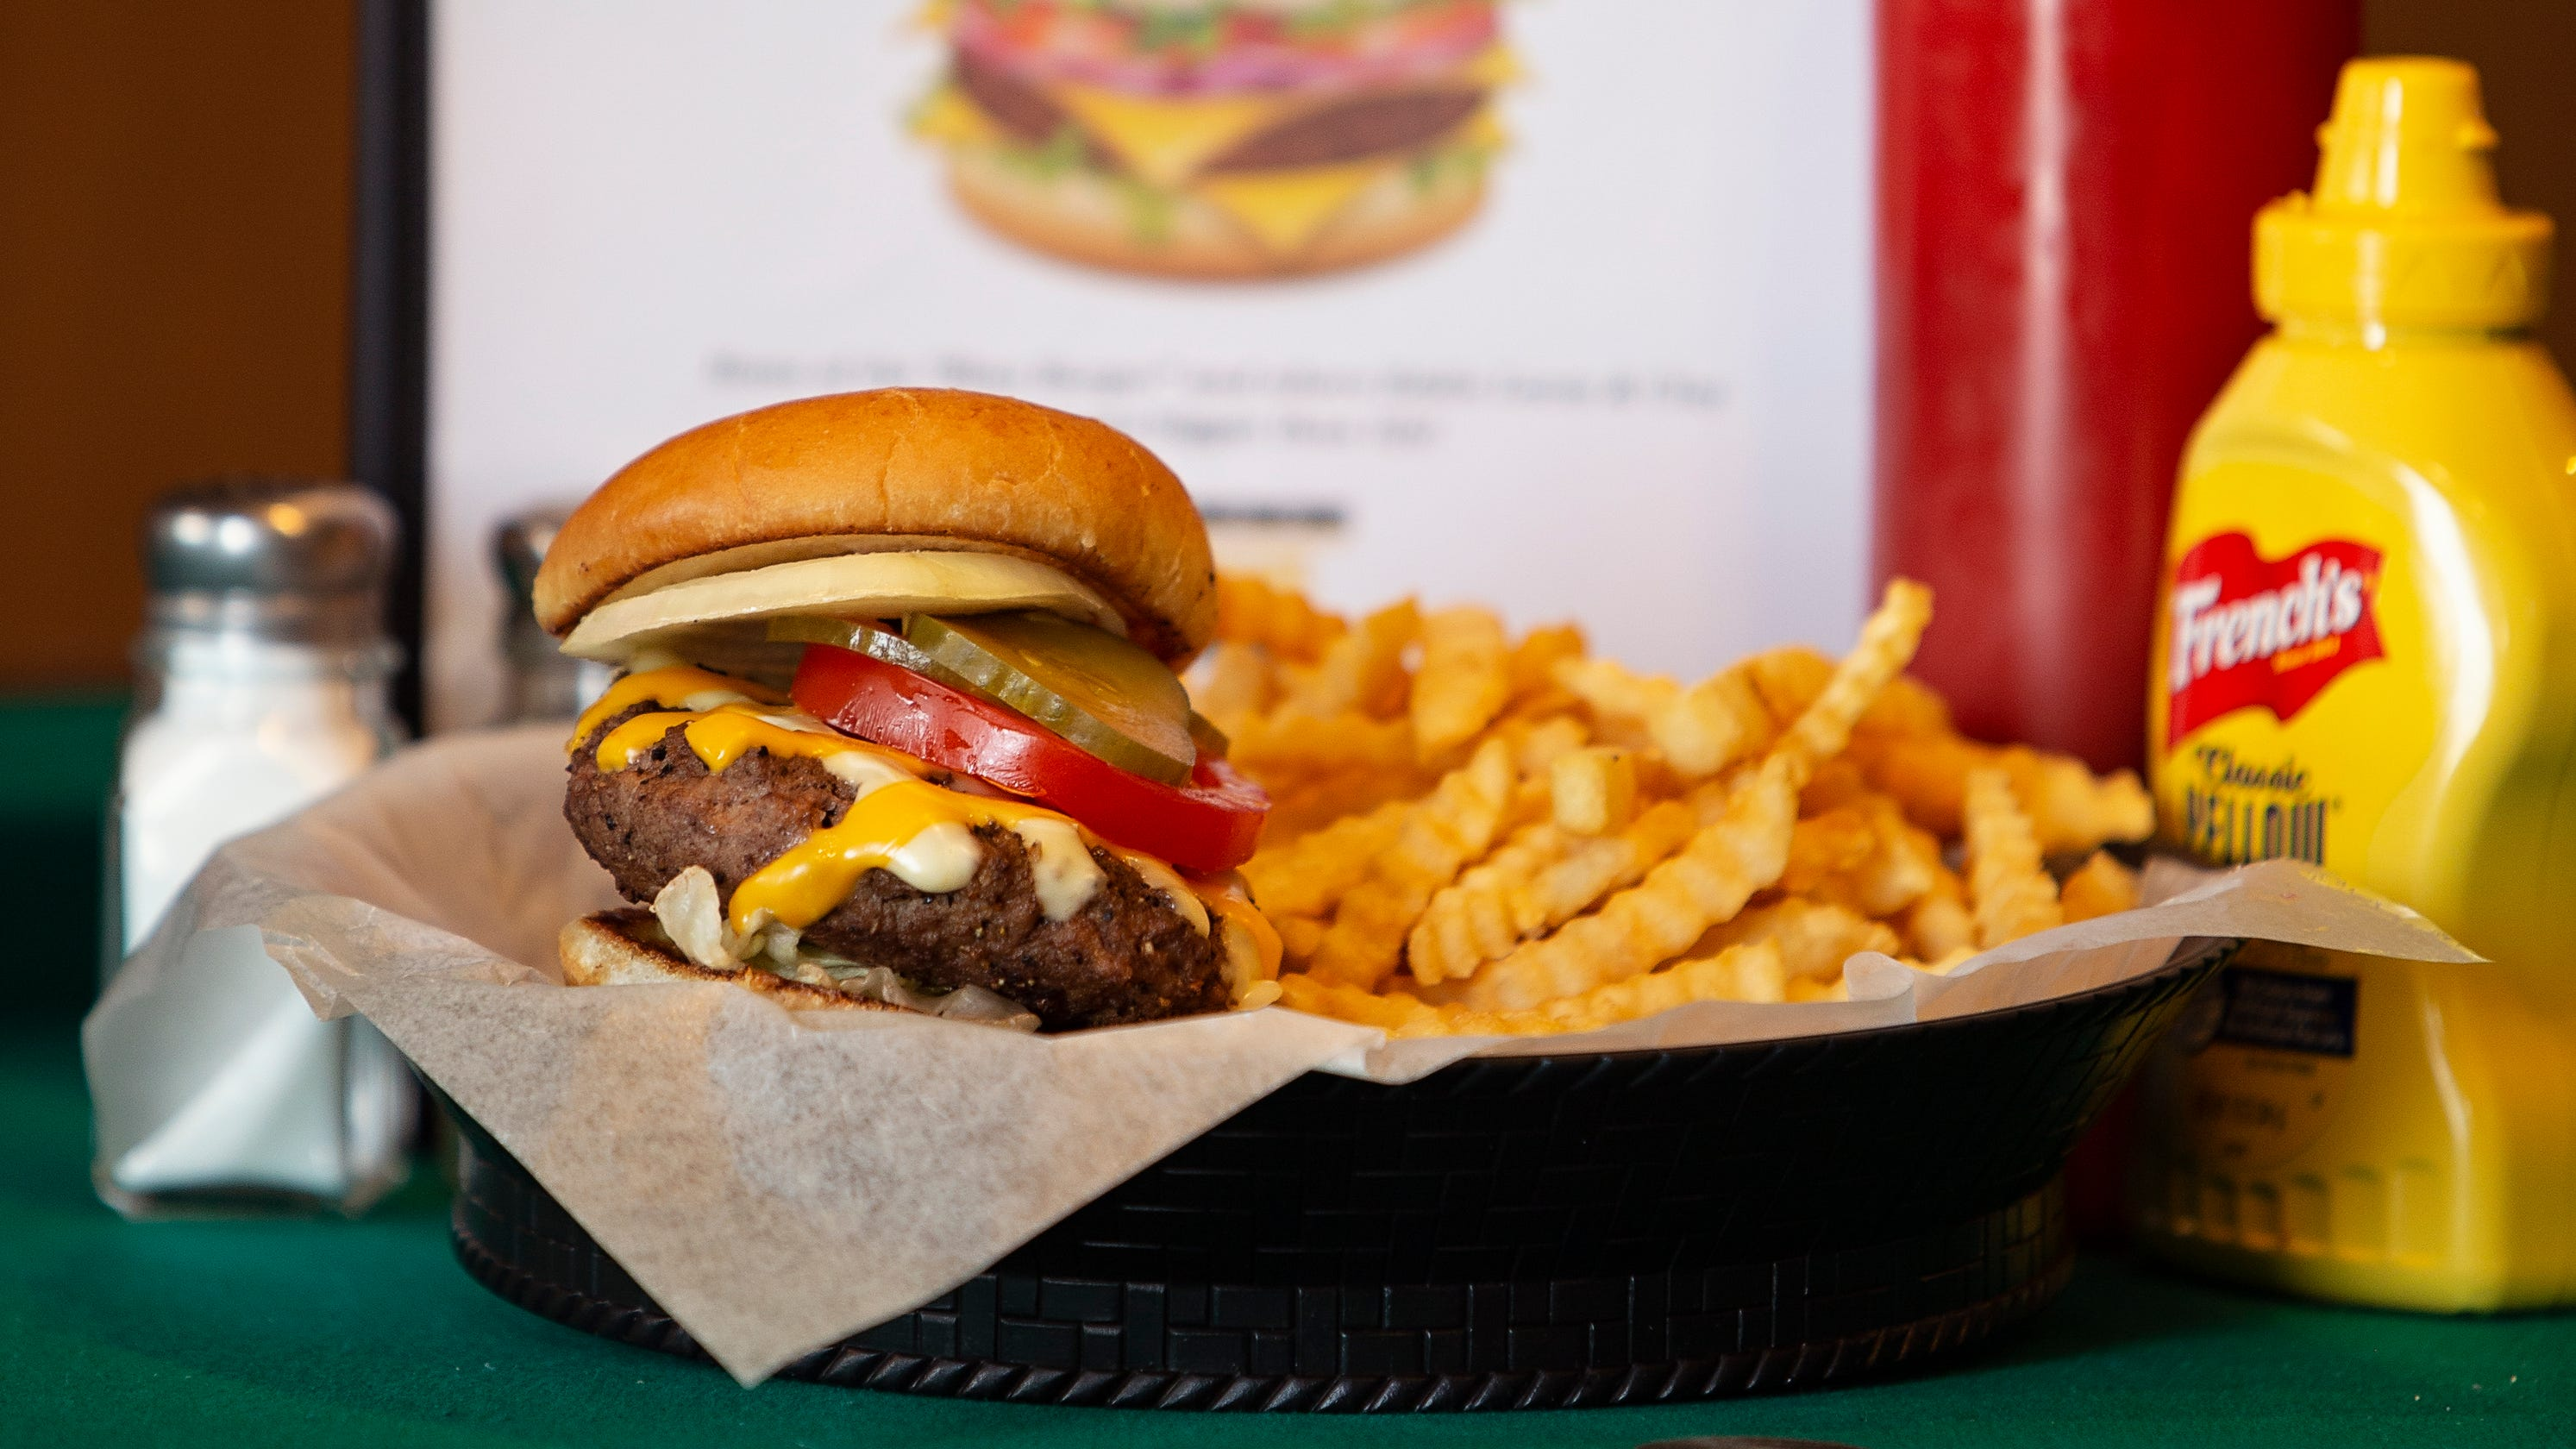 Looking for the best burgers in Iowa? Here are the winners since 2016